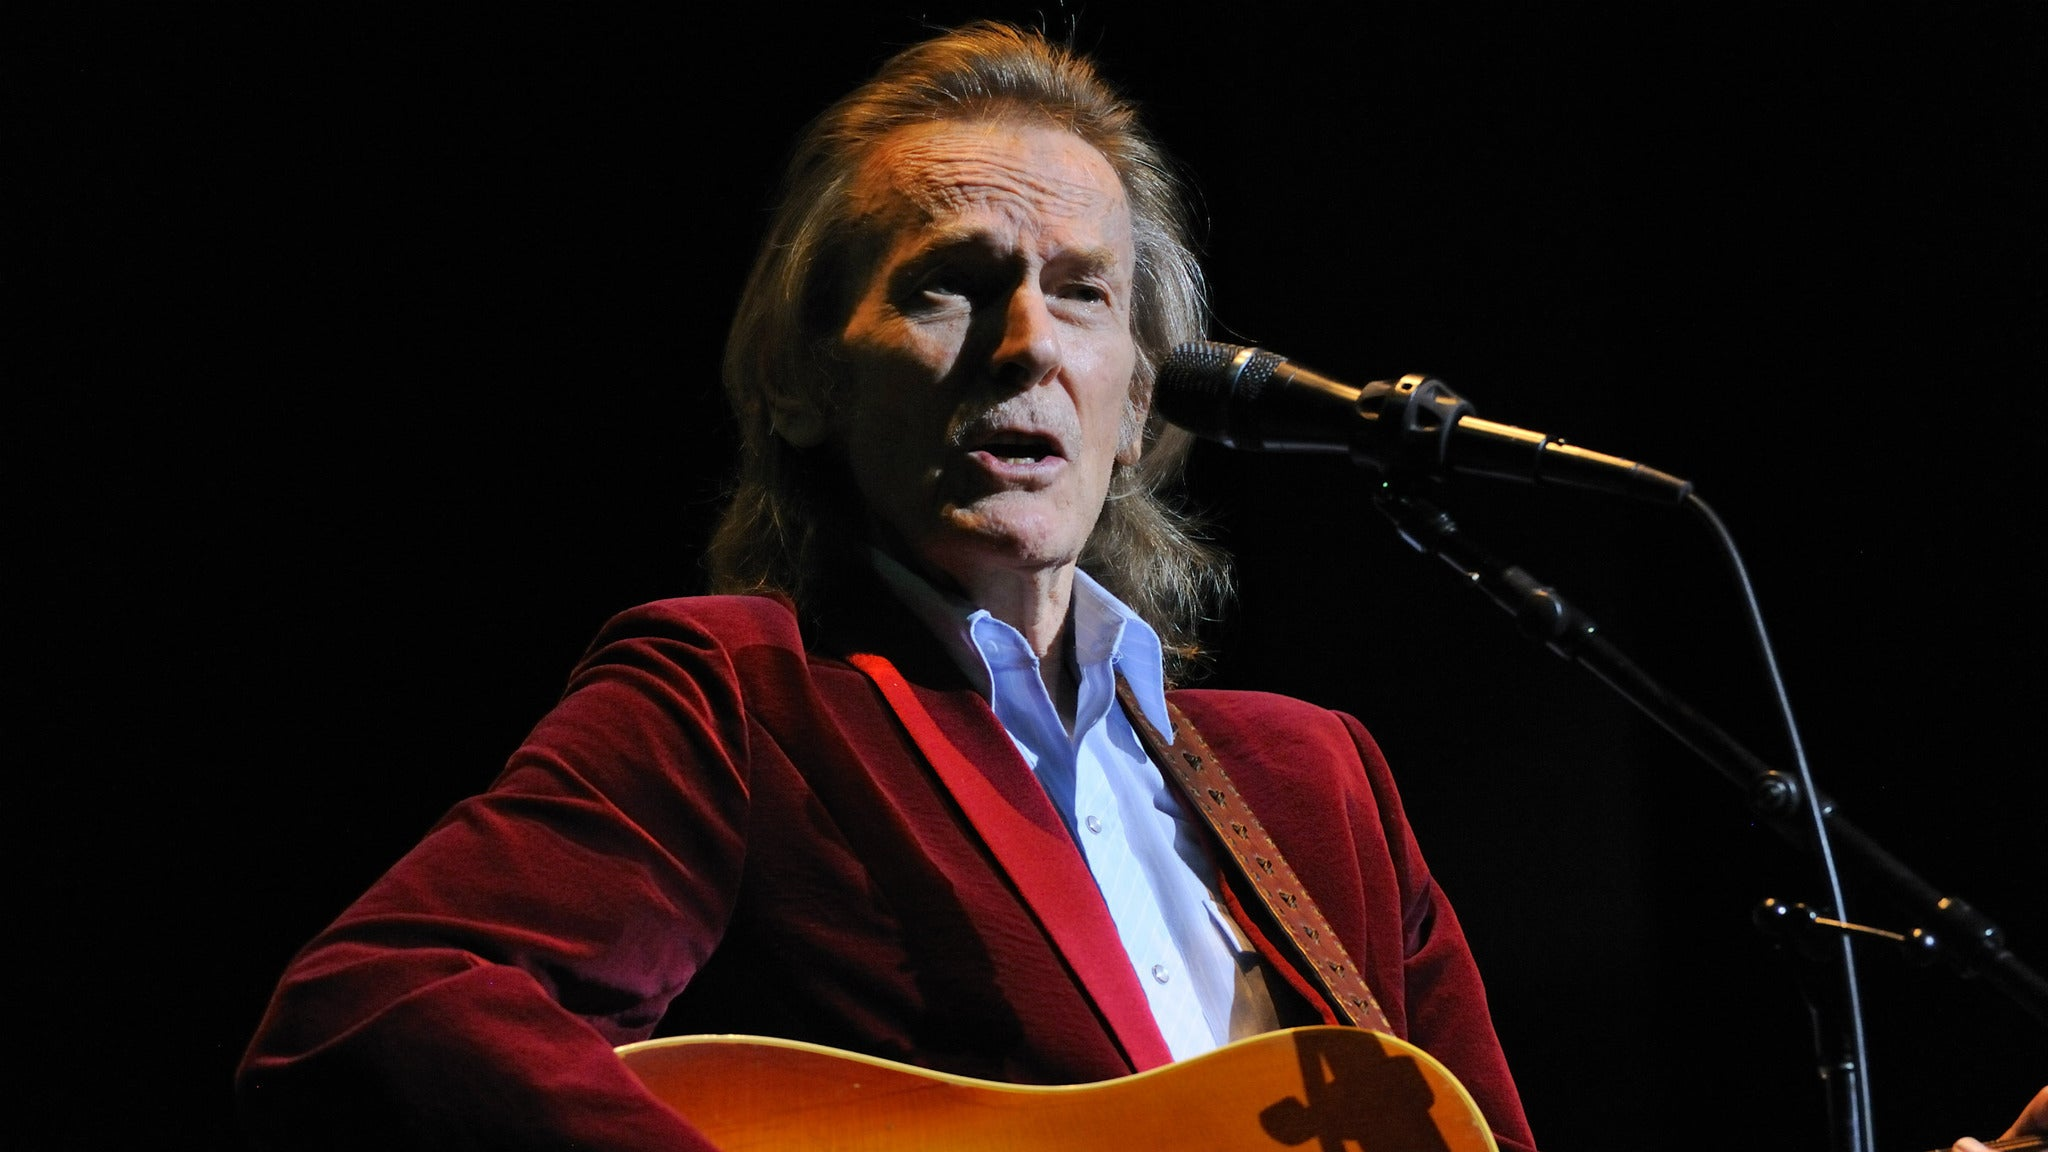 Gordon Lightfoot at Chester Fritz Auditorium